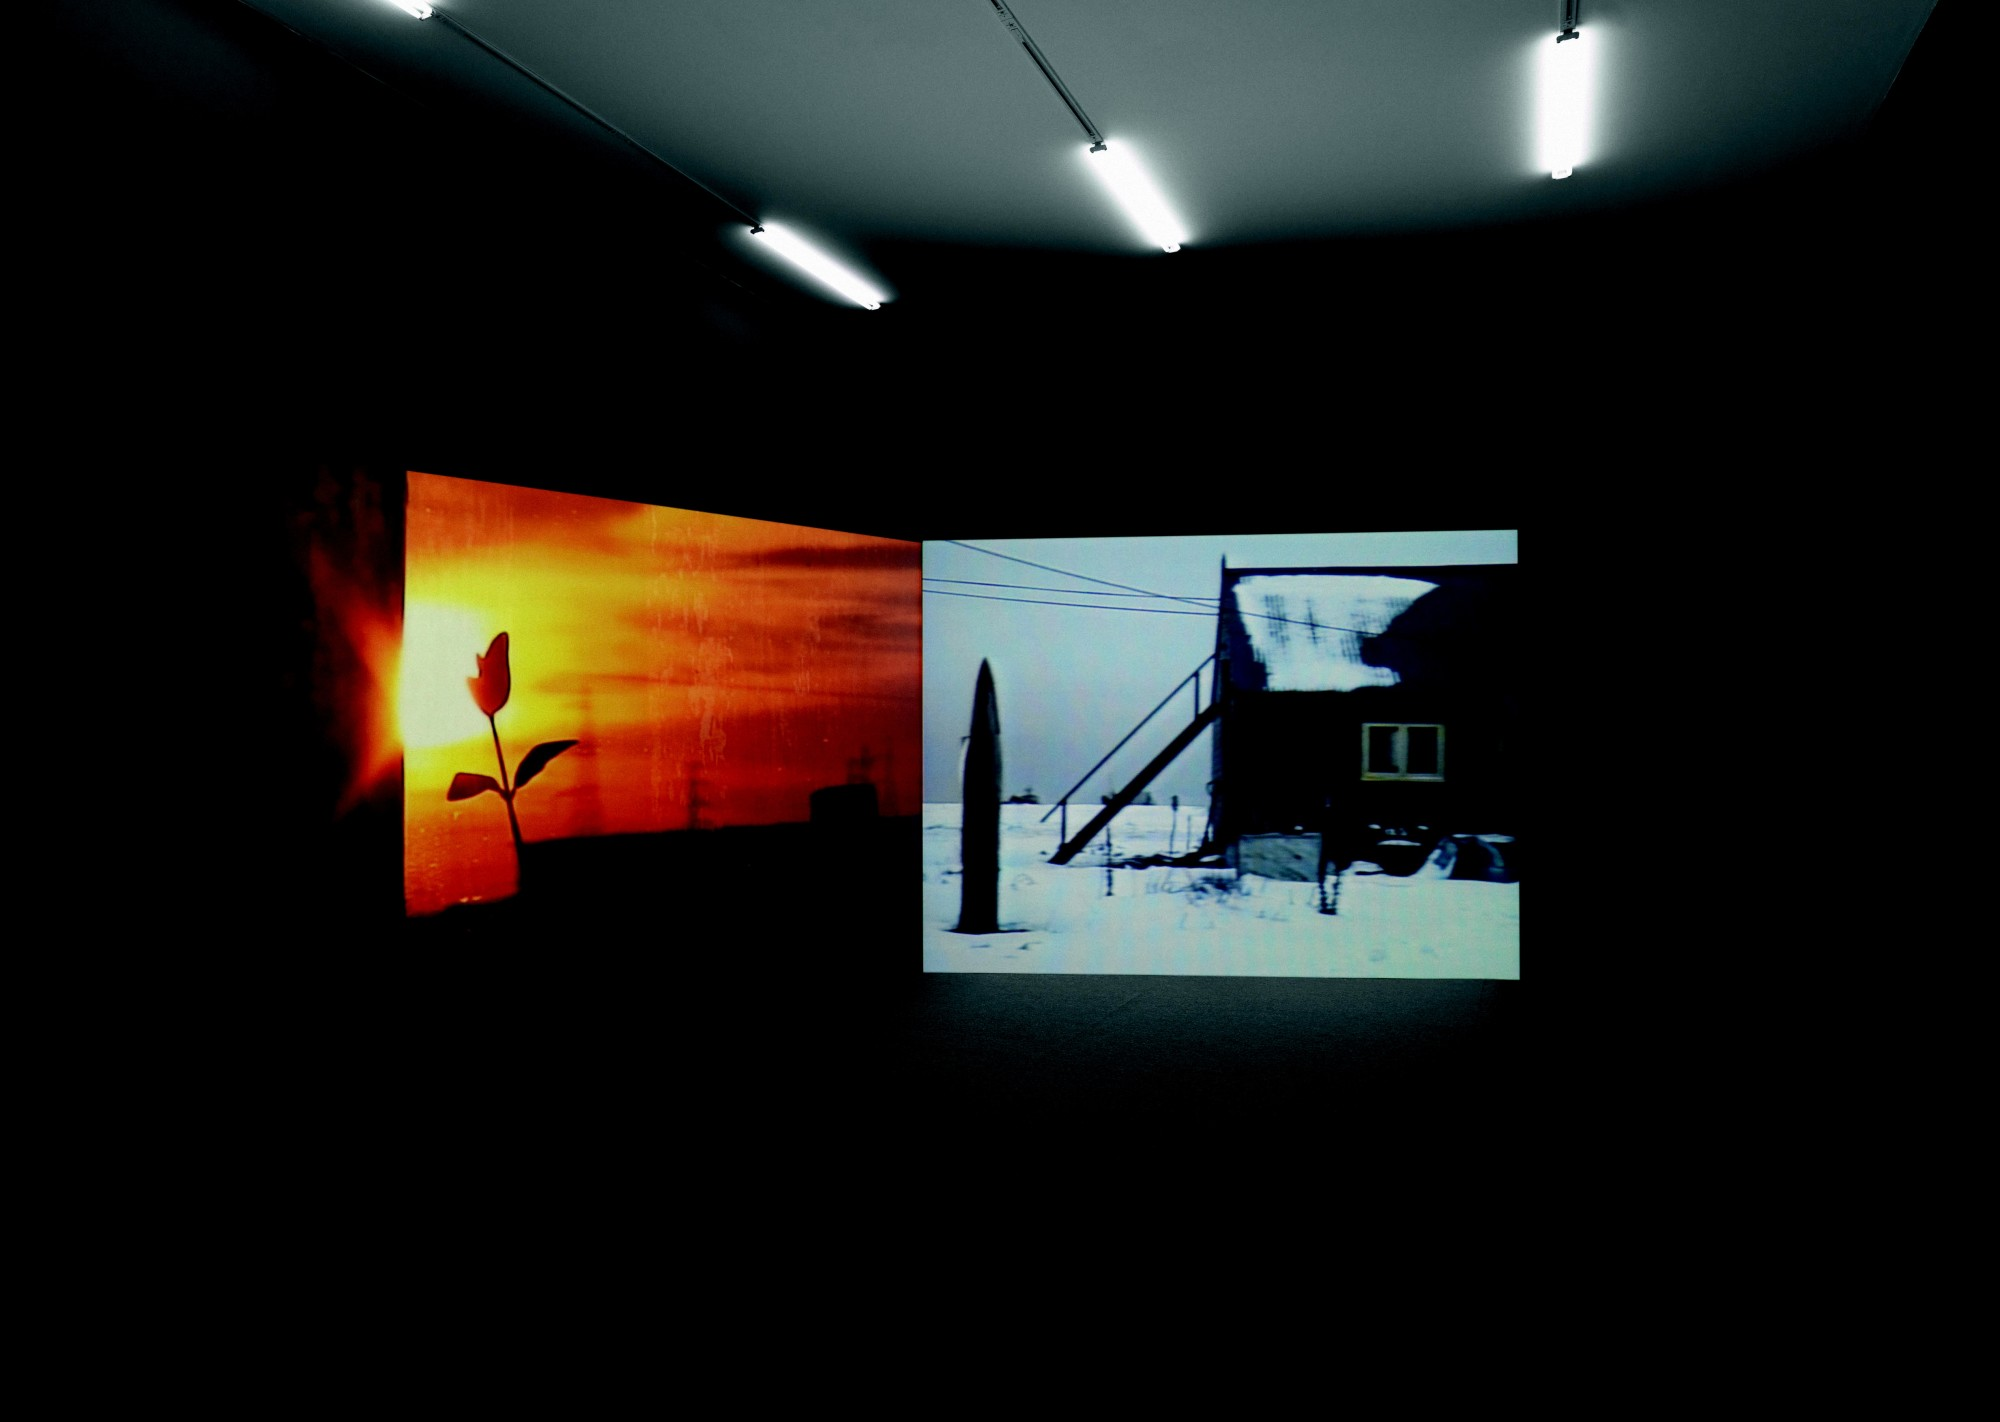 Dungeness. Kunsthalle Zürich, 2008  16'10'', Two-screen installation, Super 8 and 16mm film, colour, sound